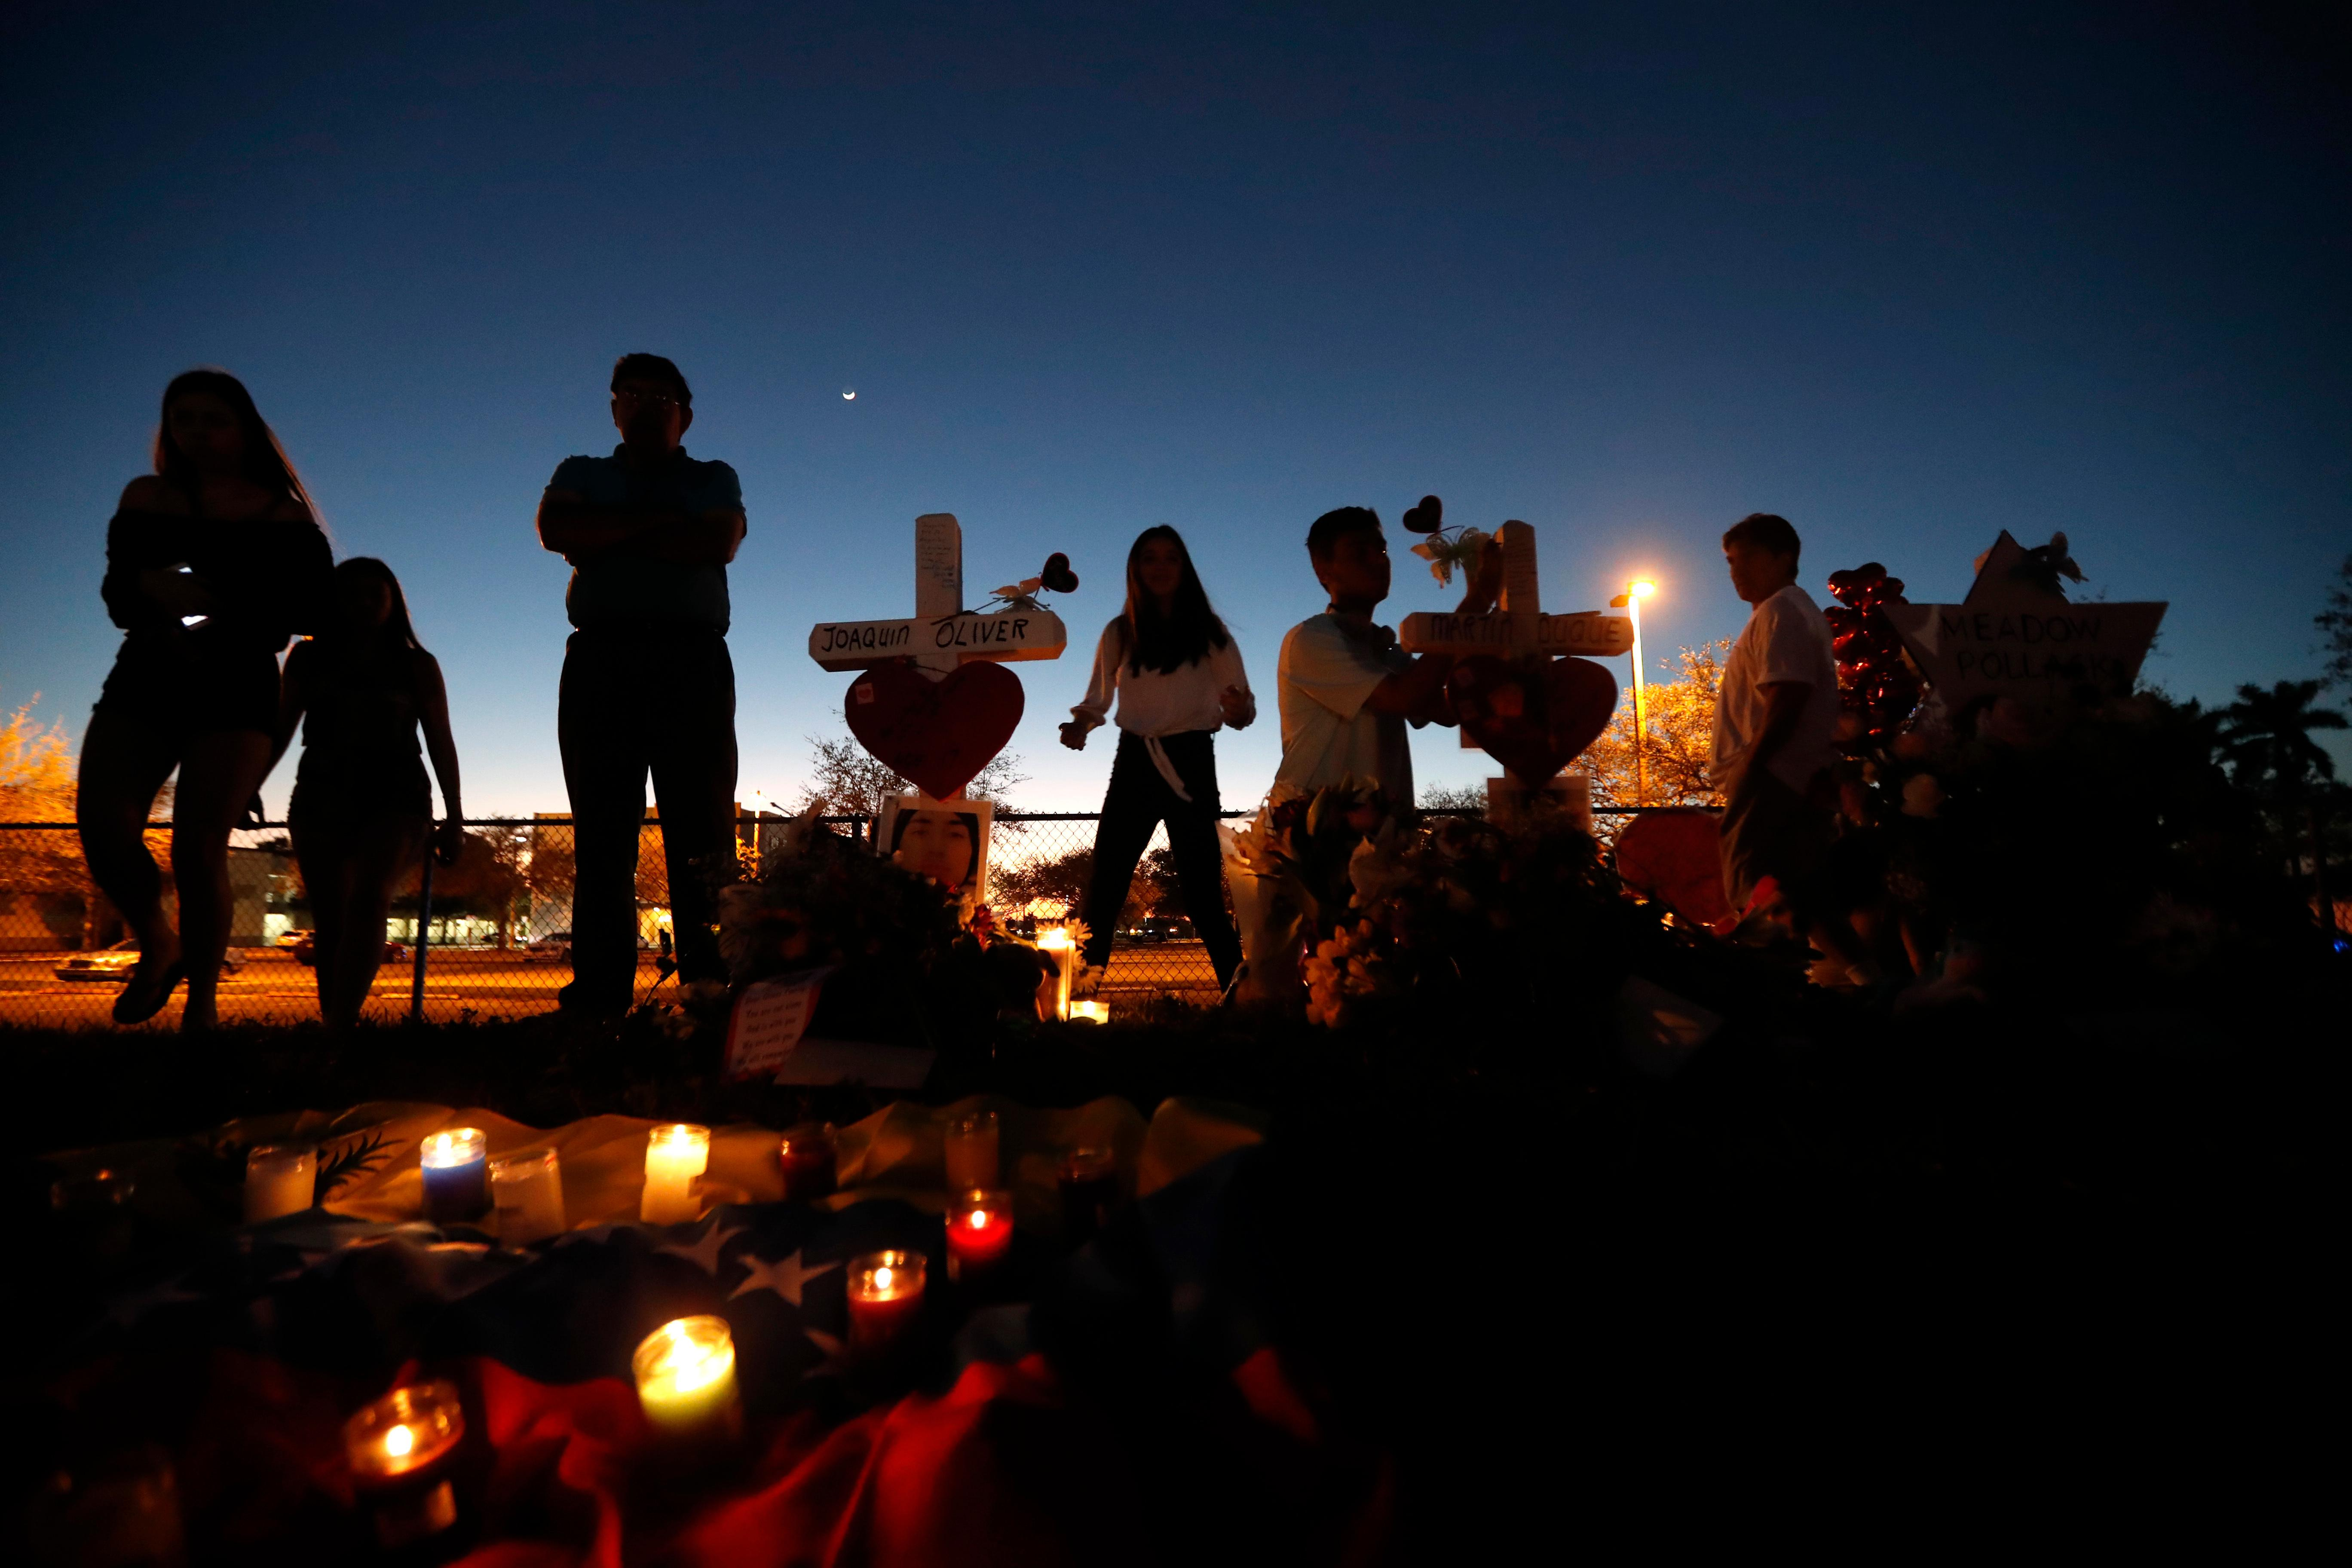 People visit a makeshift memorial outside Marjory Stoneman Douglas High School, where 17 students and faculty were killed in Wednesday's mass shooting in Parkland, Fla., Sunday, Feb. 18, 2018. Nikolas Cruz, a former student, was charged with 17 counts of premeditated murder on Thursday. (AP Photo/Gerald Herbert)